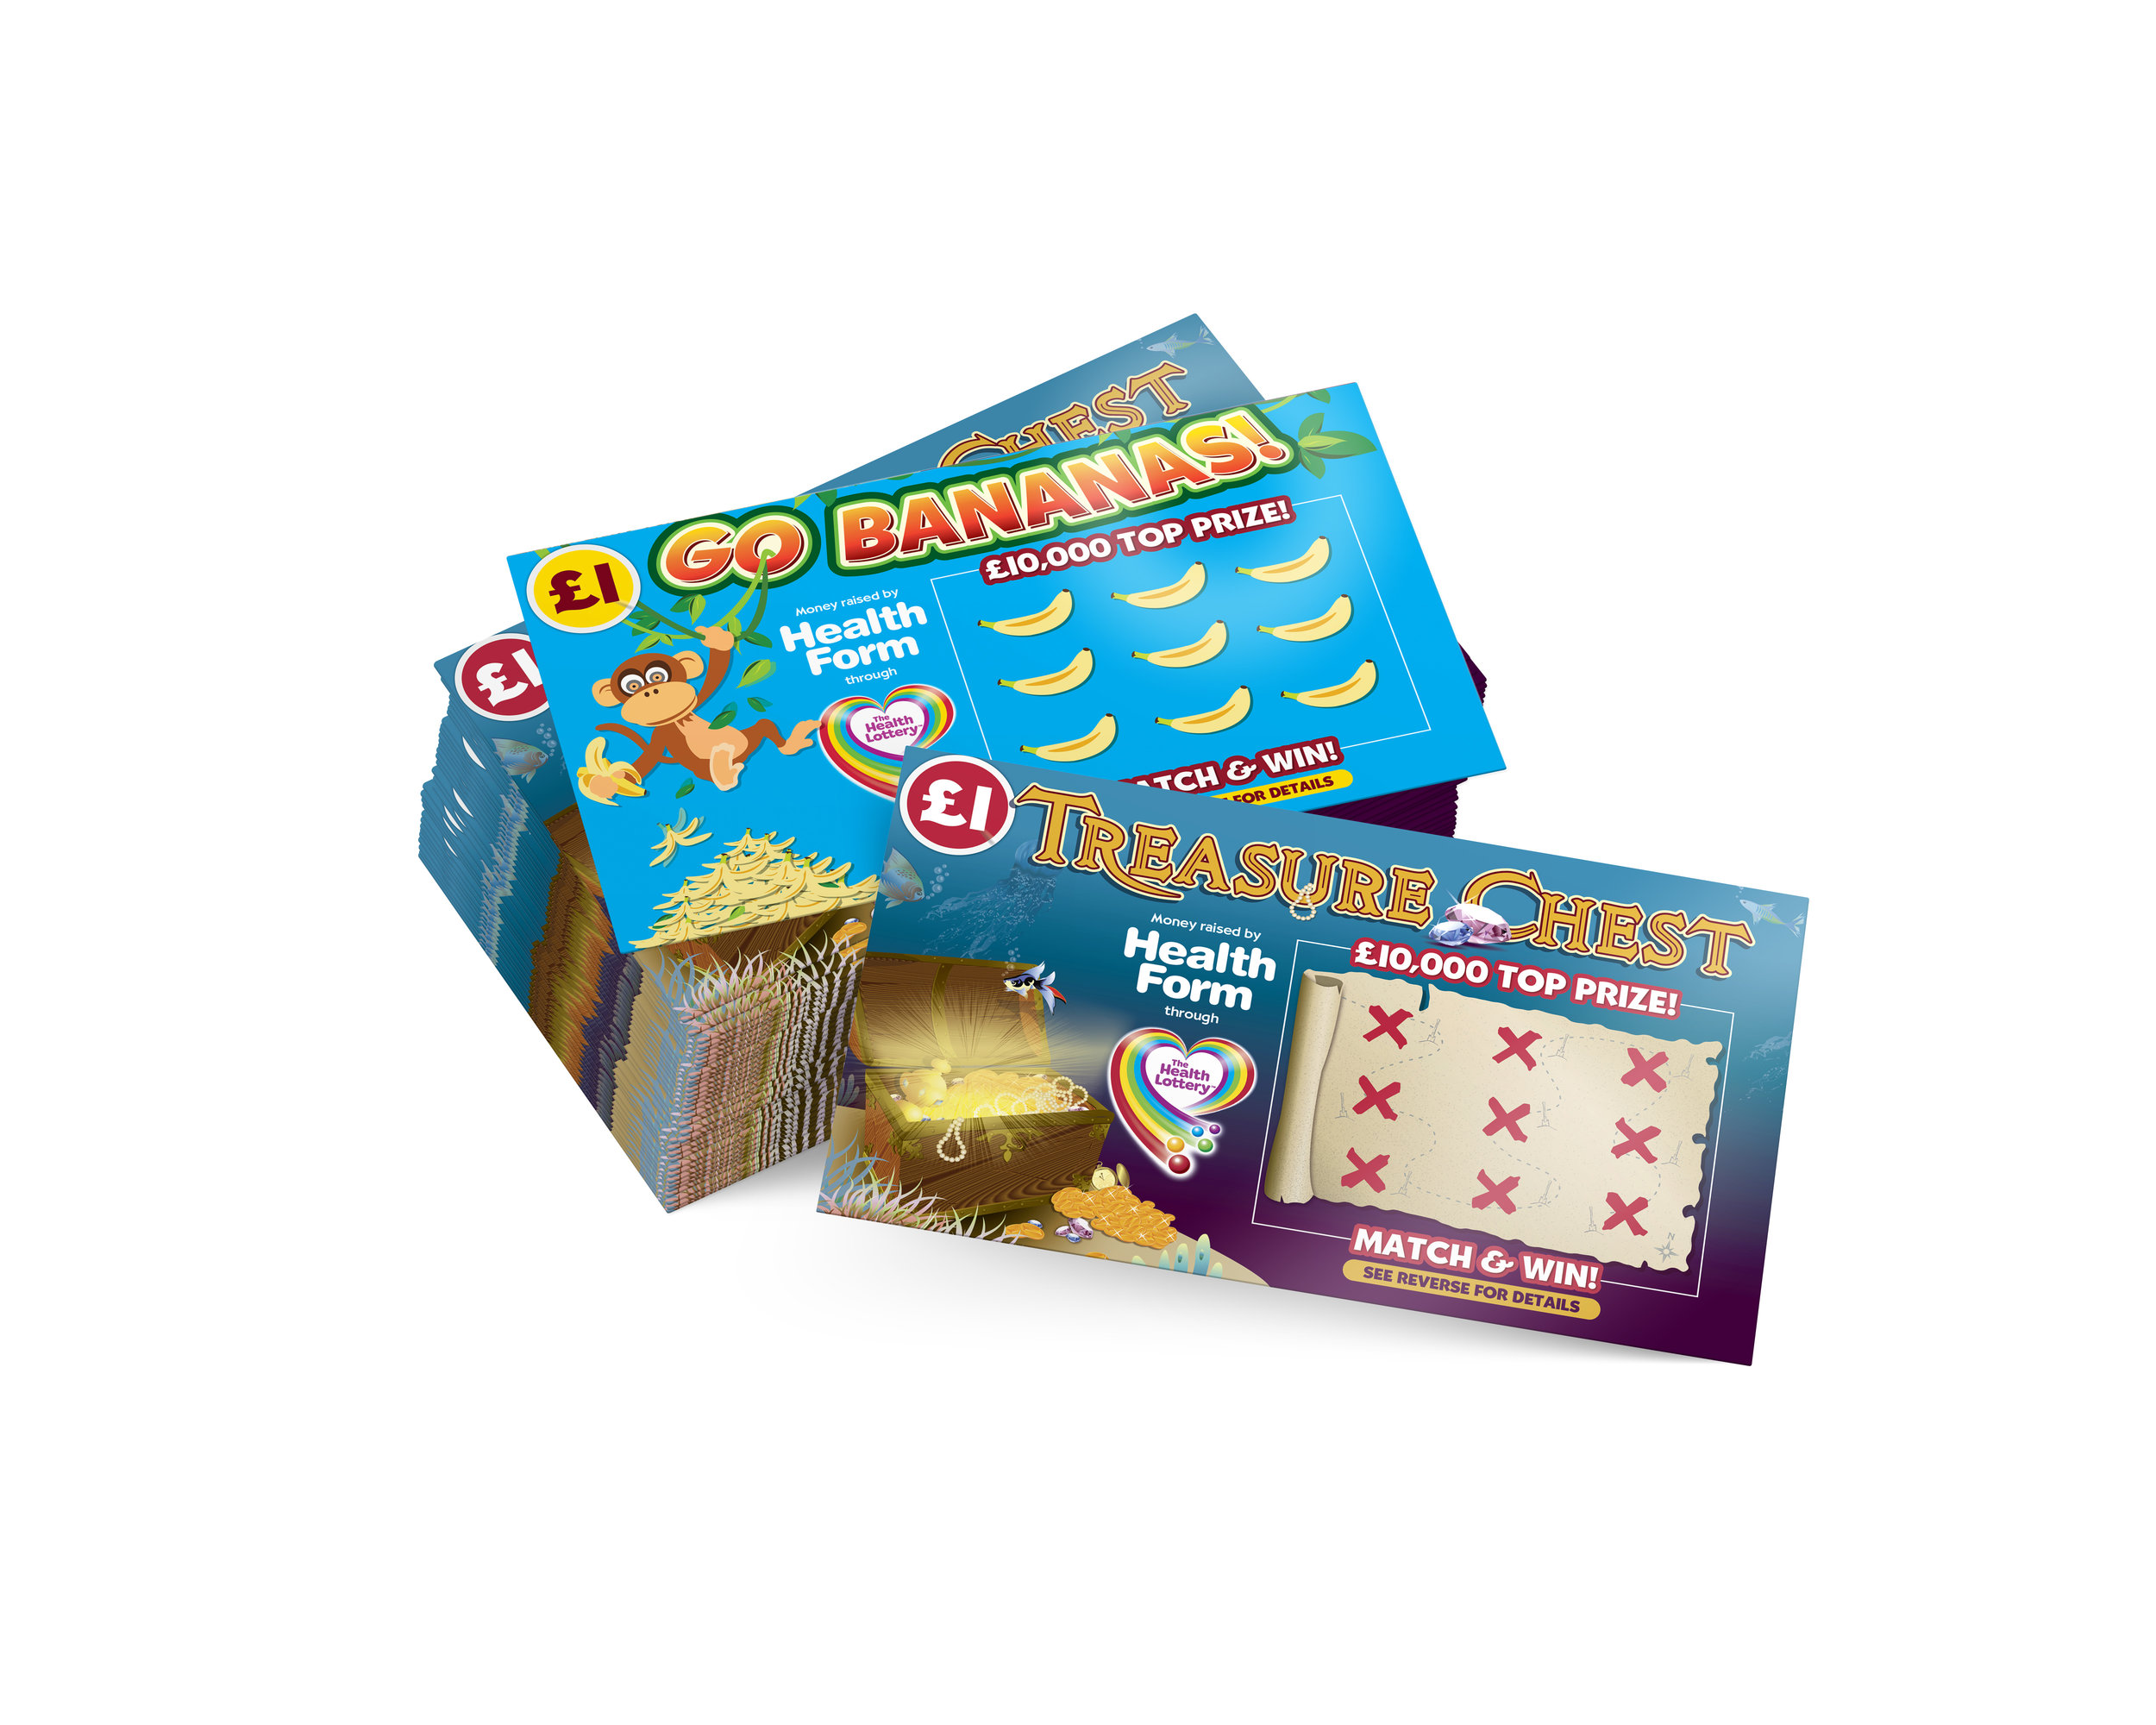 thl scratchcards bananas chest.jpg